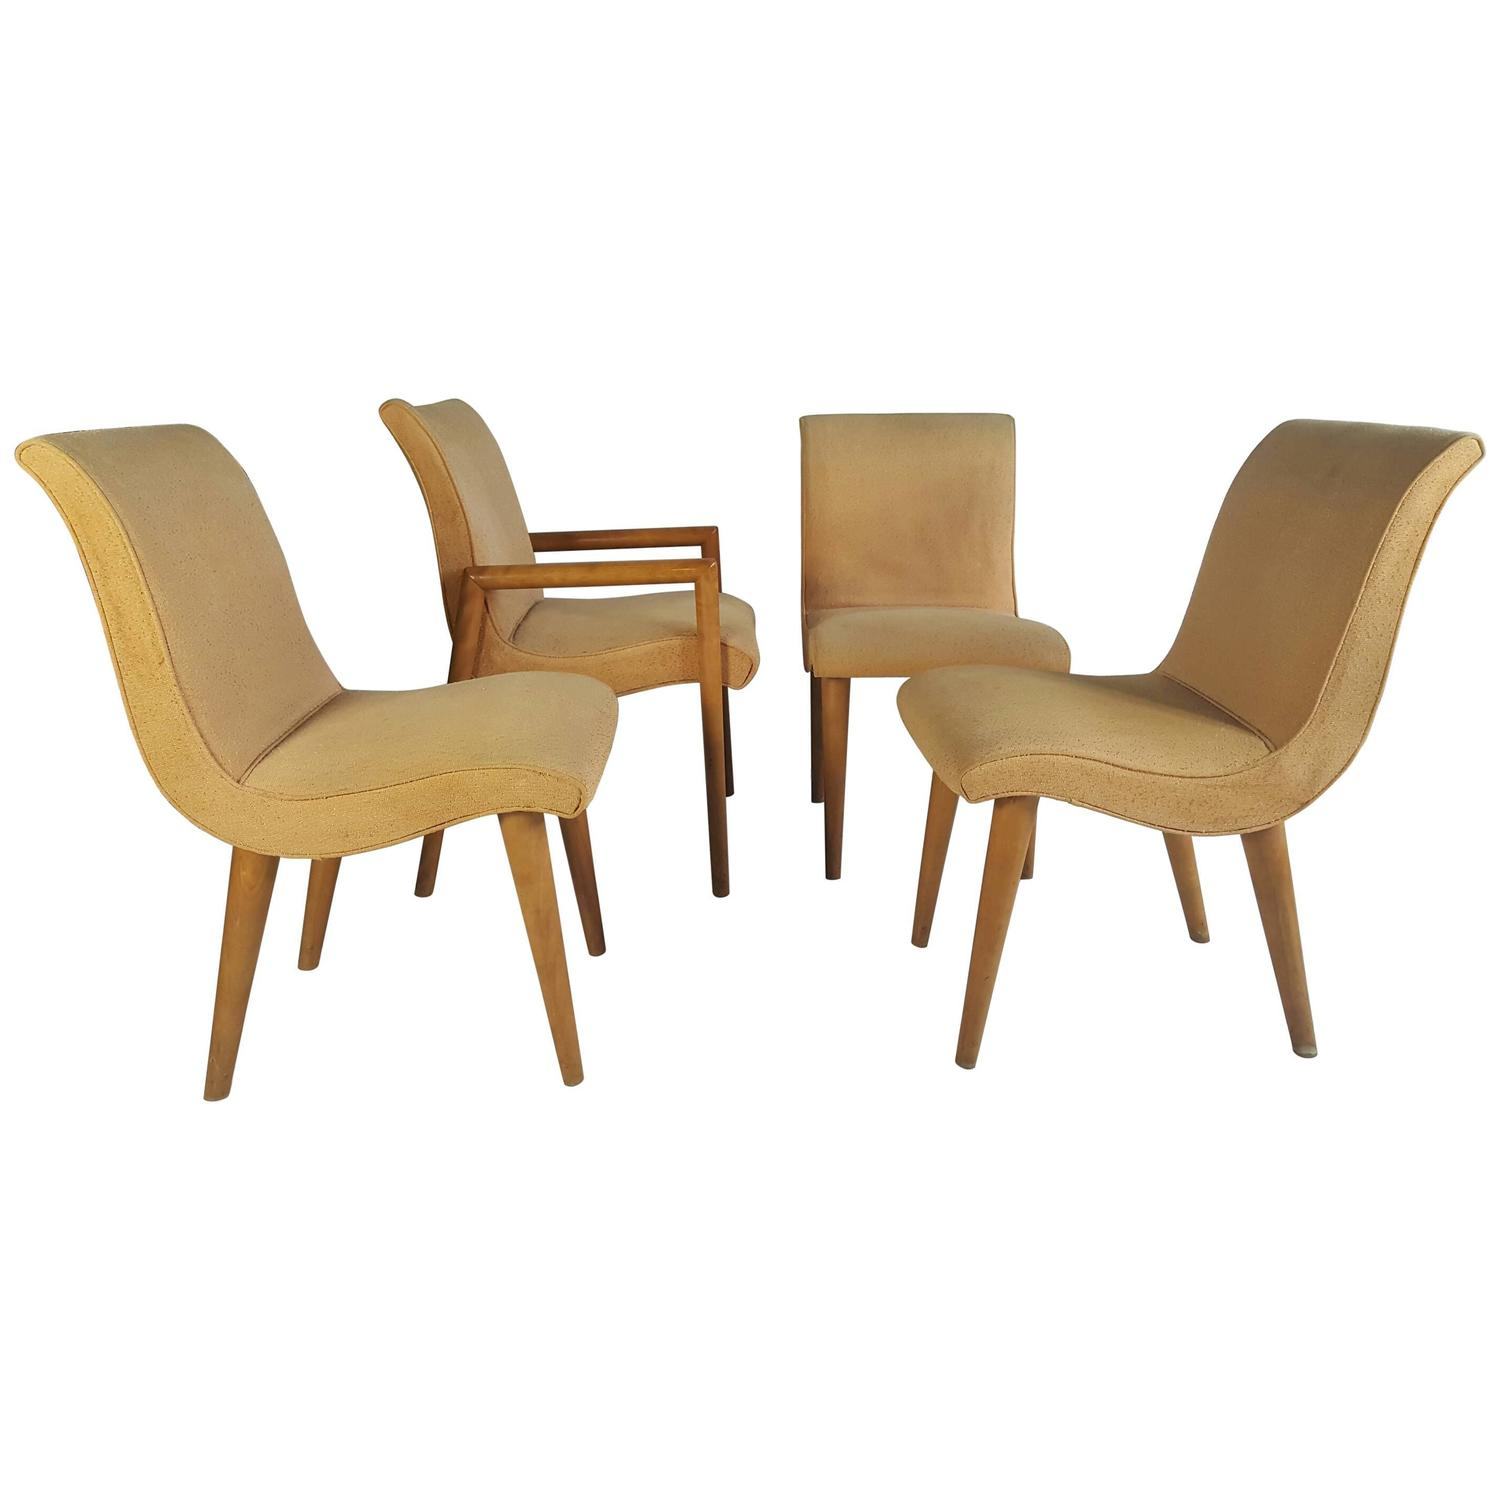 Set Of Four Russel Wright For Conant Ball Dining Chairs Modernist At 1stdibs